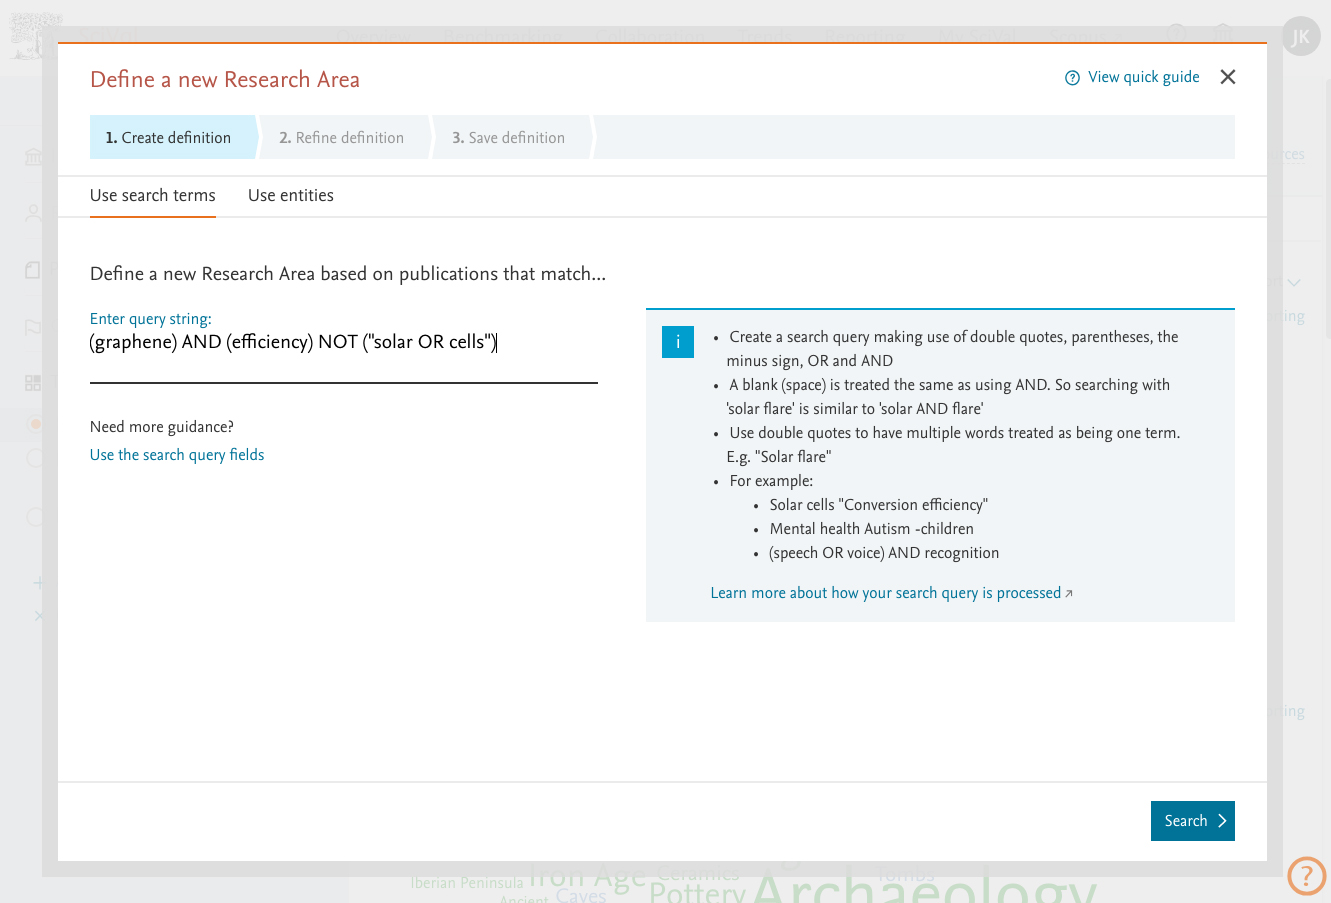 It's now easier to define a new Research Area. For more advanced users you can now use more complex search strings